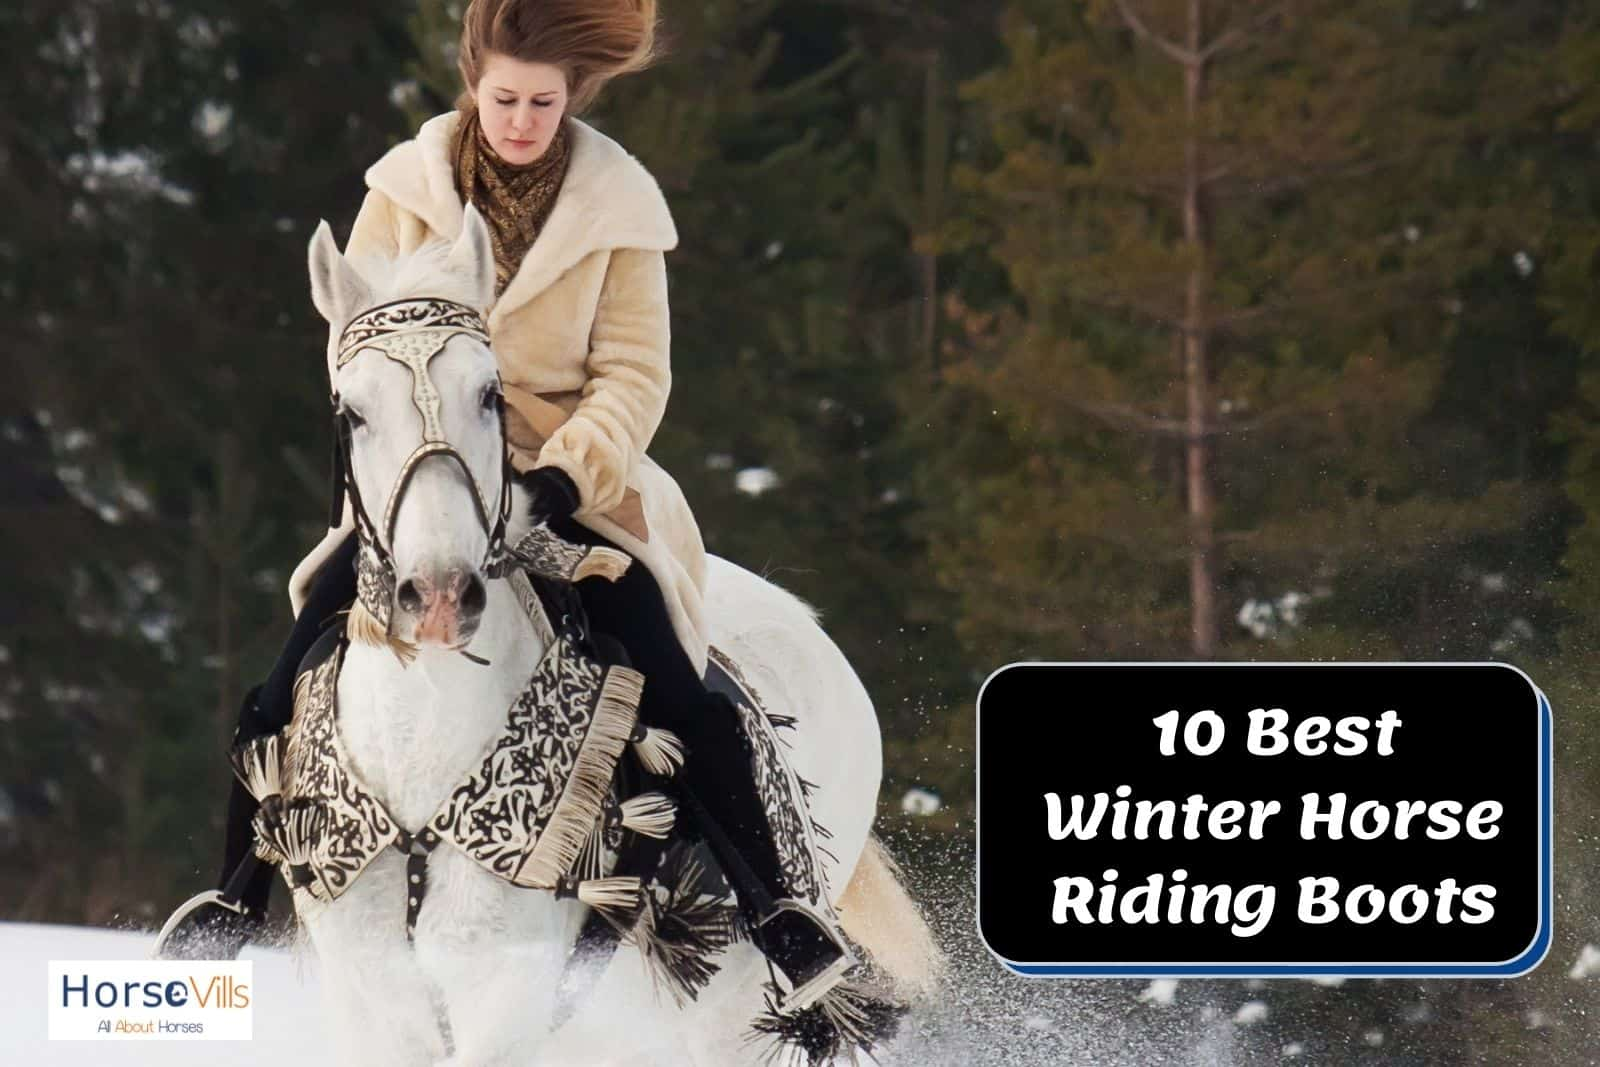 a lady riding a horse while using her best winter horse riding boots